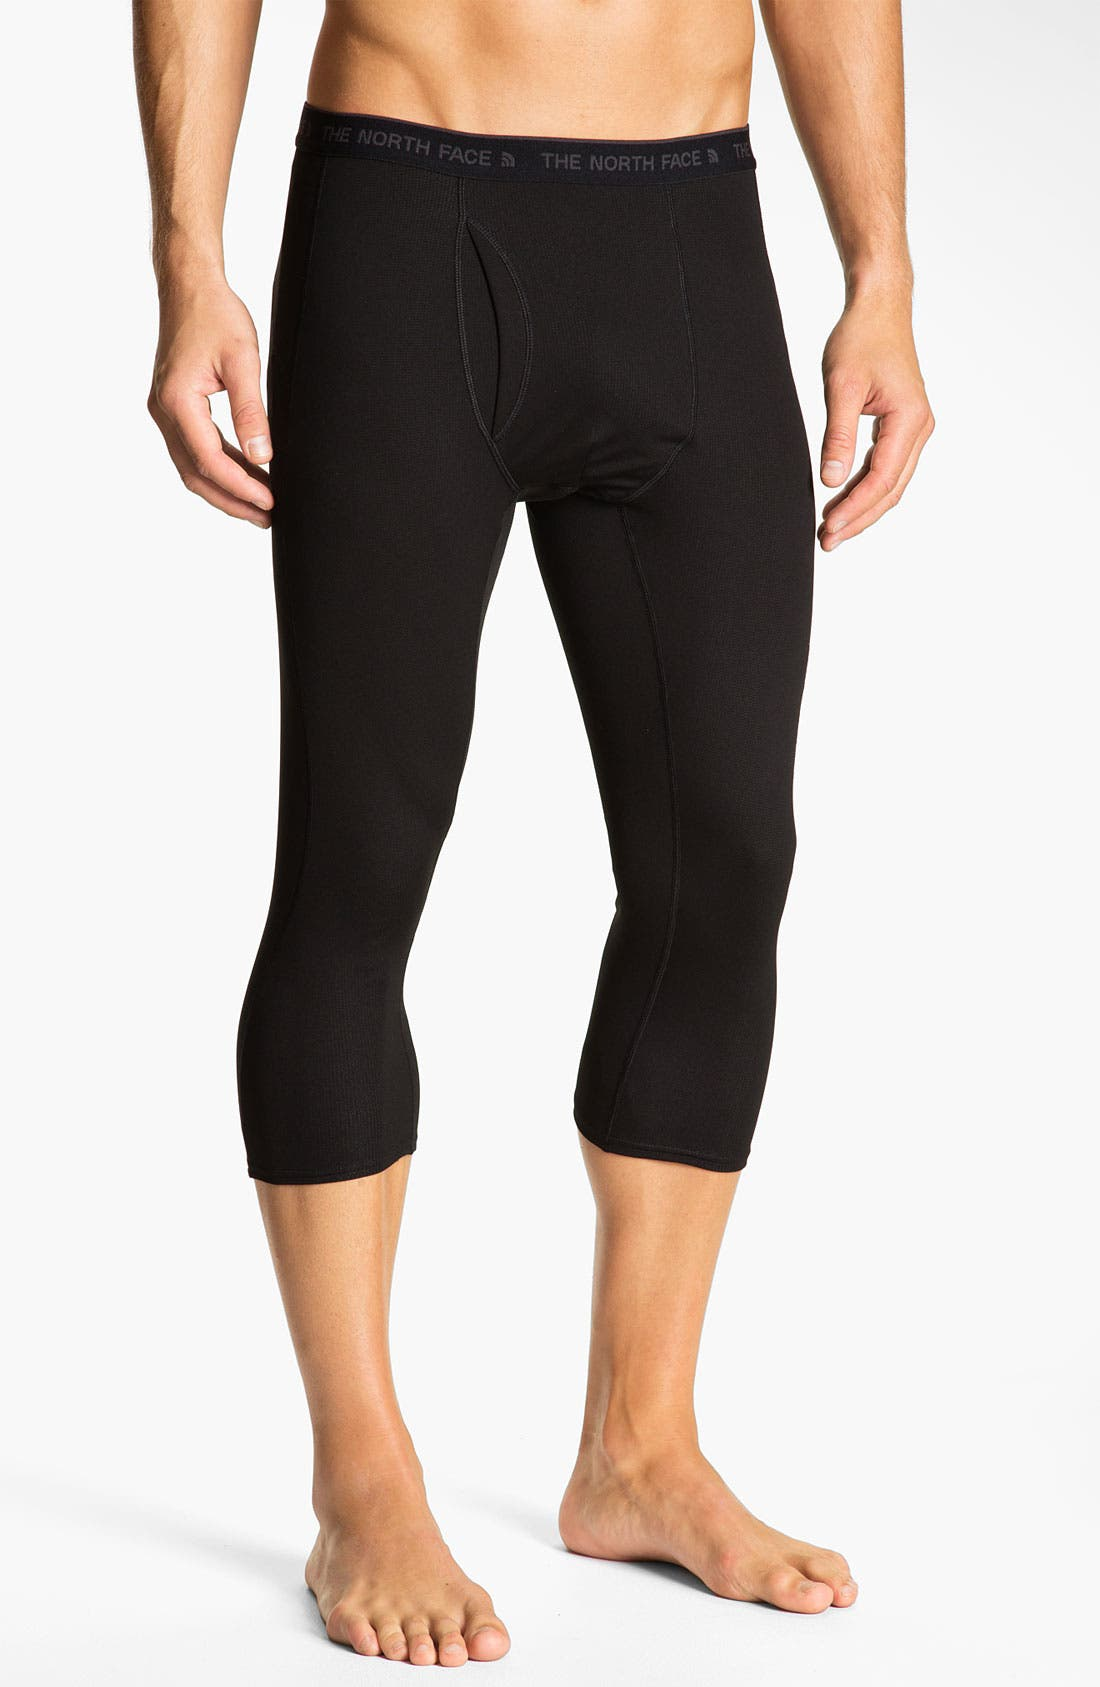 Alternate Image 1 Selected - The North Face 'Baselayer - Light' FlashDry™ Boot Top Leggings (Online Exclusive)